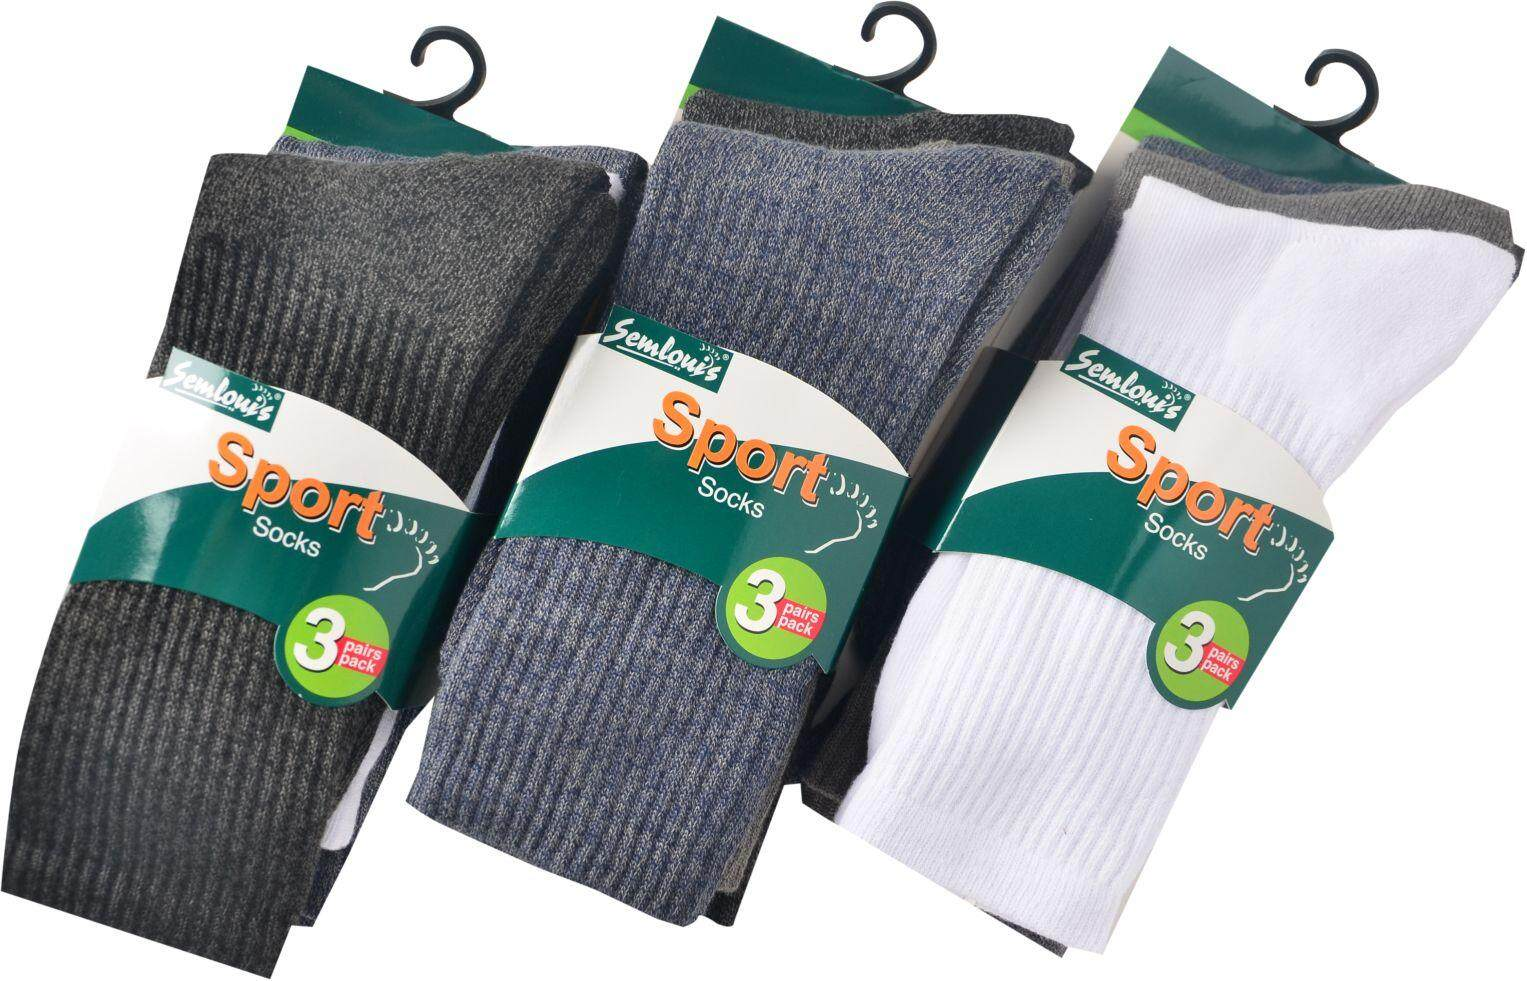 Semlouis 3 in 1 Sport Quarter Crew Cushion Base Socks - Plain / PKT